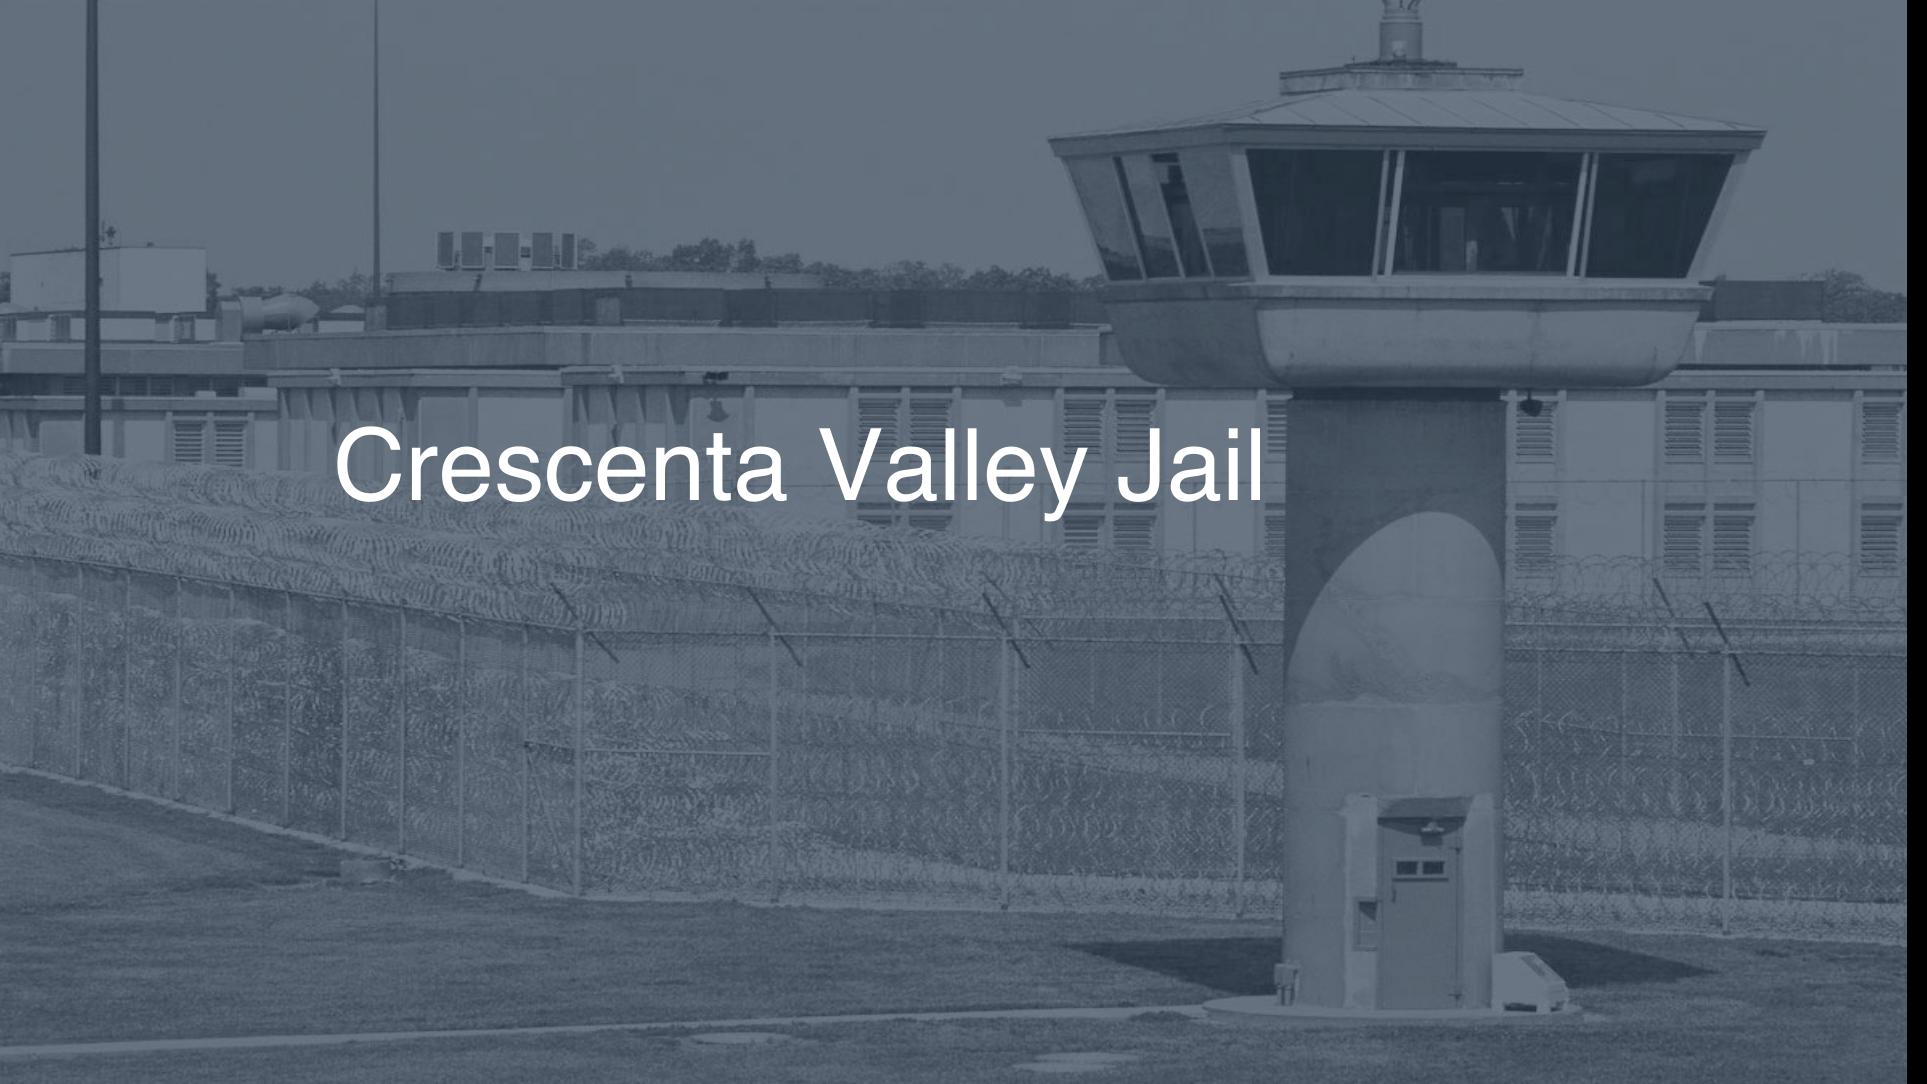 Crescenta Valley Jail correctional facility picture